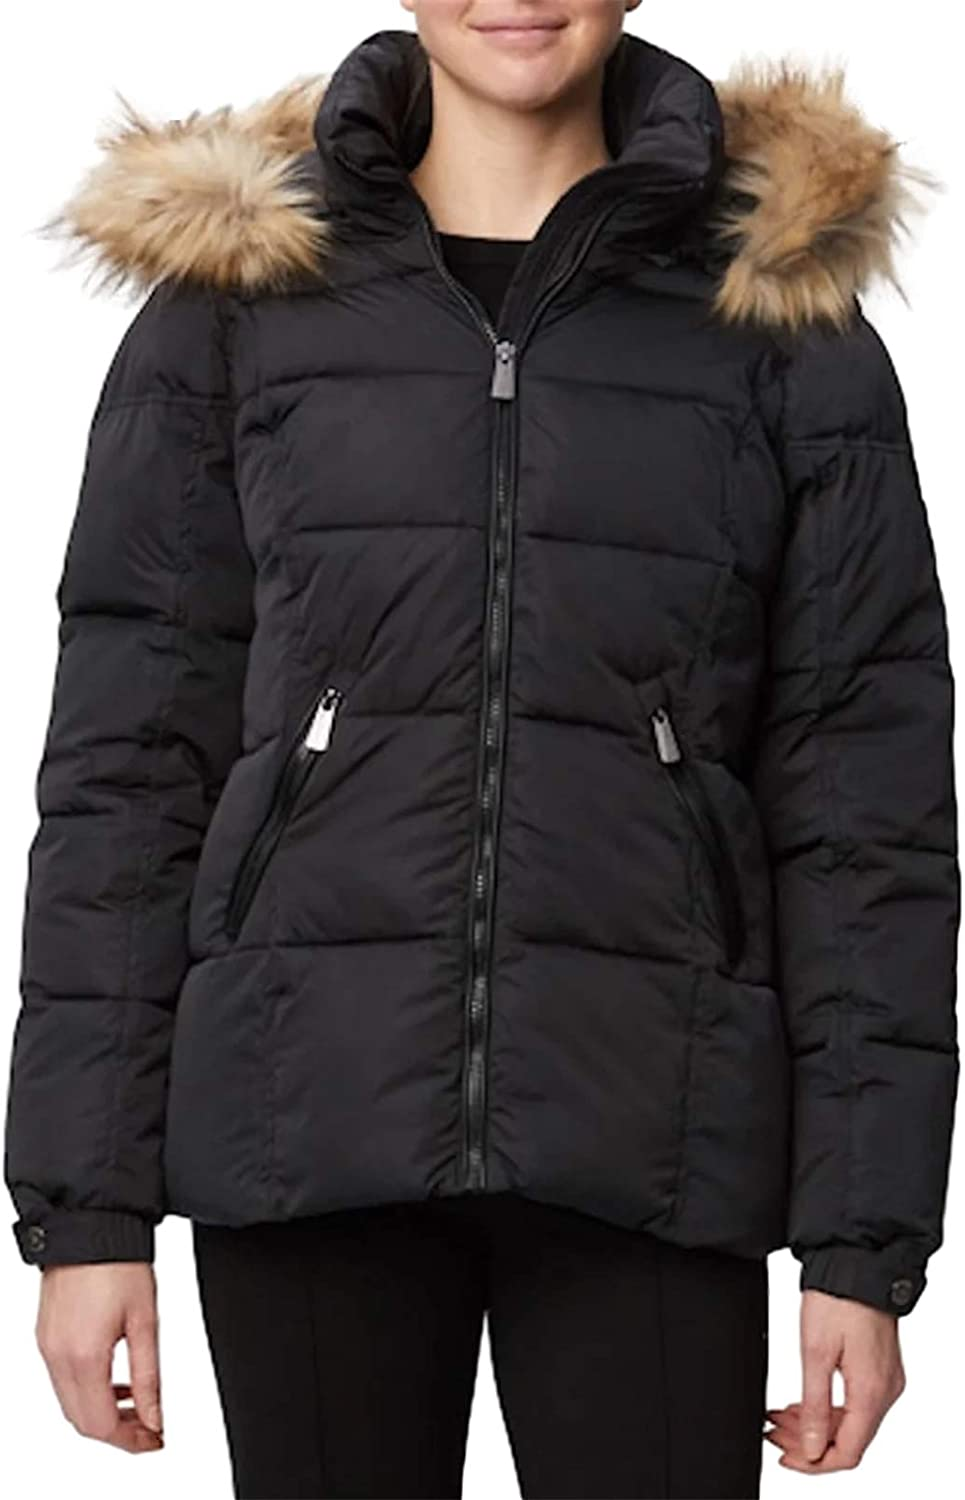 BRUBOBO Womens Thicken Winter Coats Quilted Warm Parka Jackets with Removable Faux Fur Hood